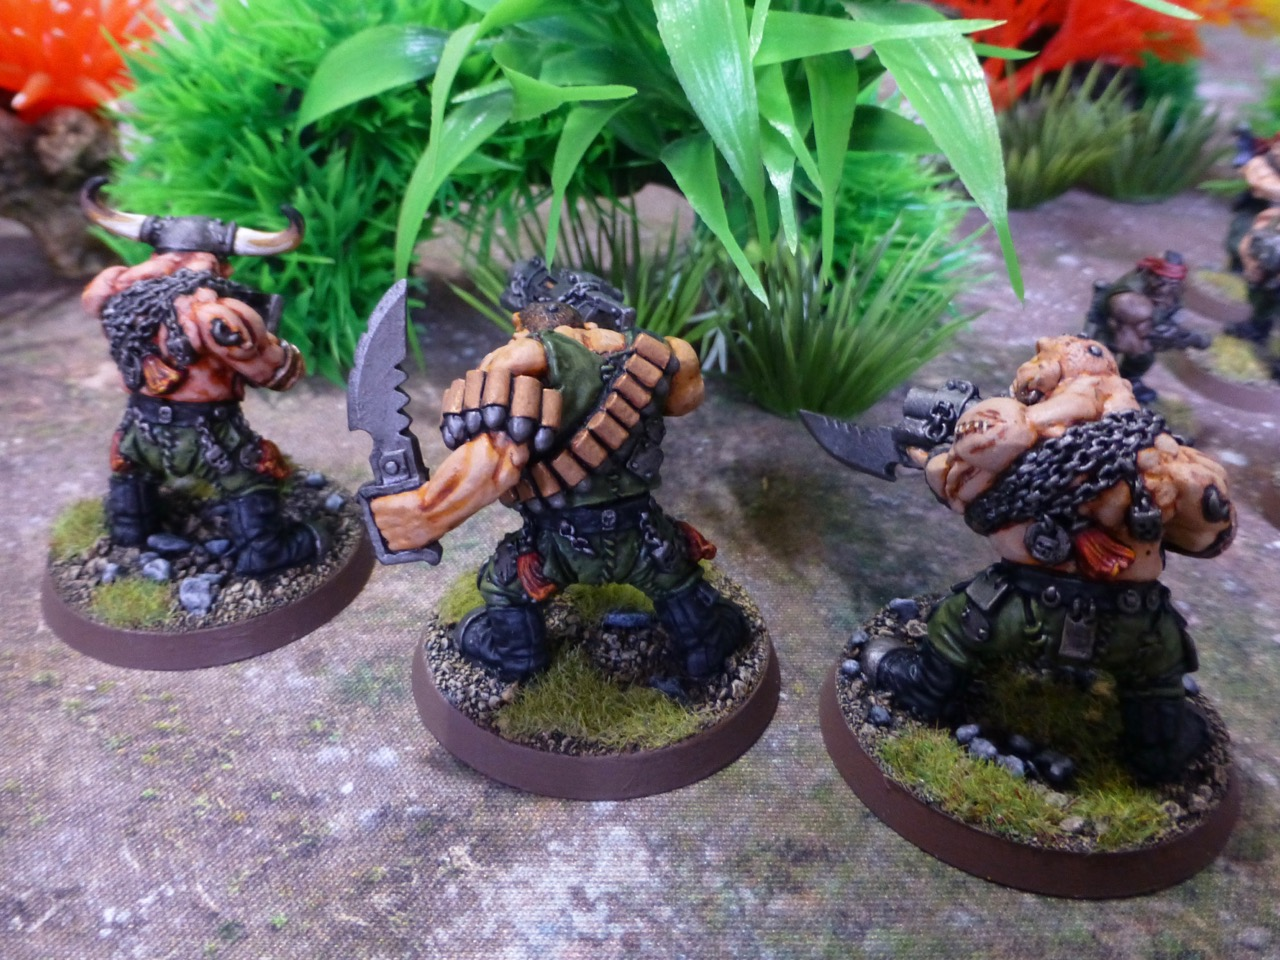 Back view of three Ogryns in front of green foliage